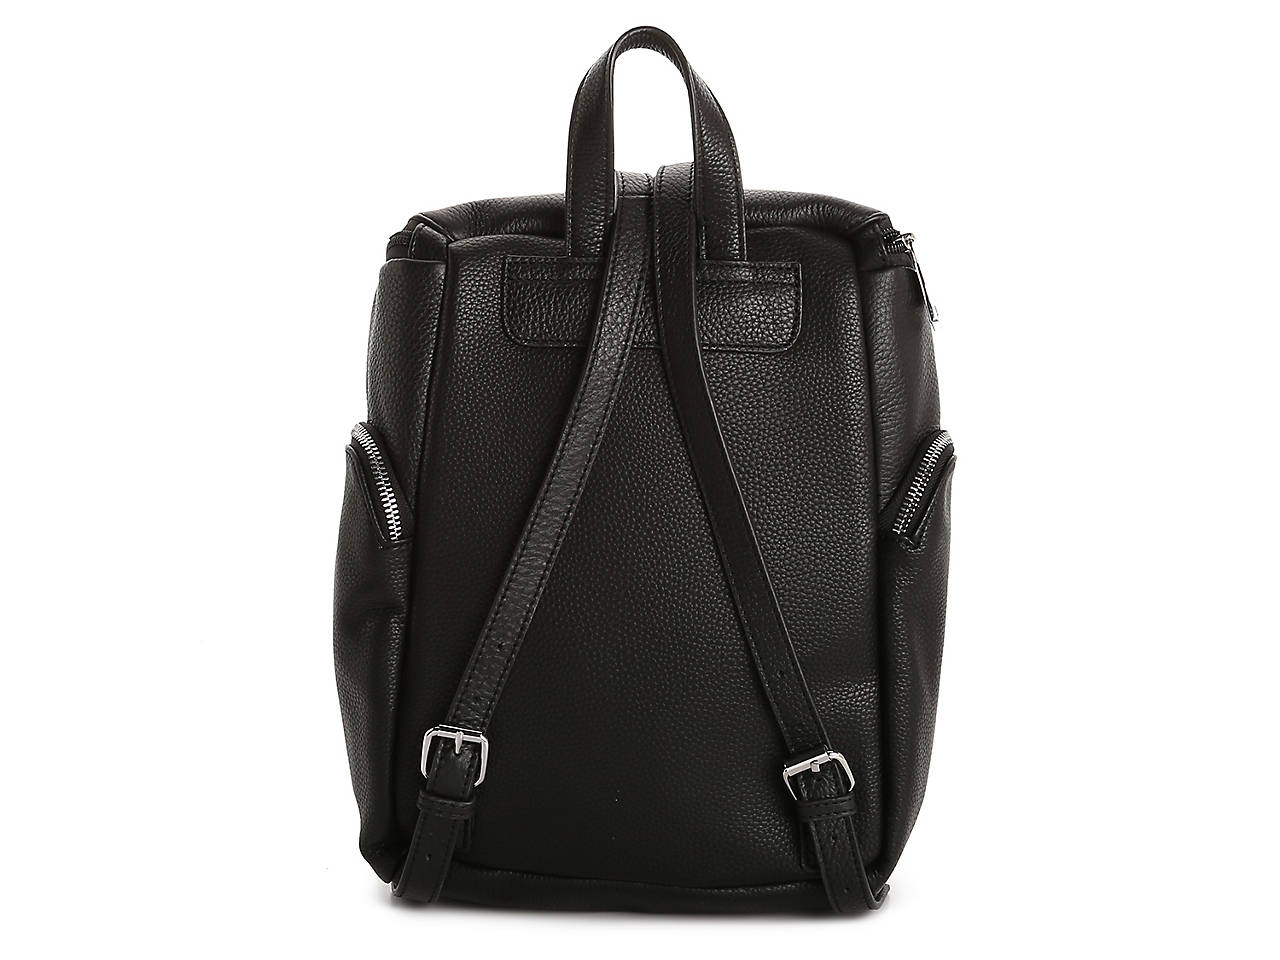 Perlina Isabelle Leather Backpack Women s Handbags   Accessories  0b3636b754565